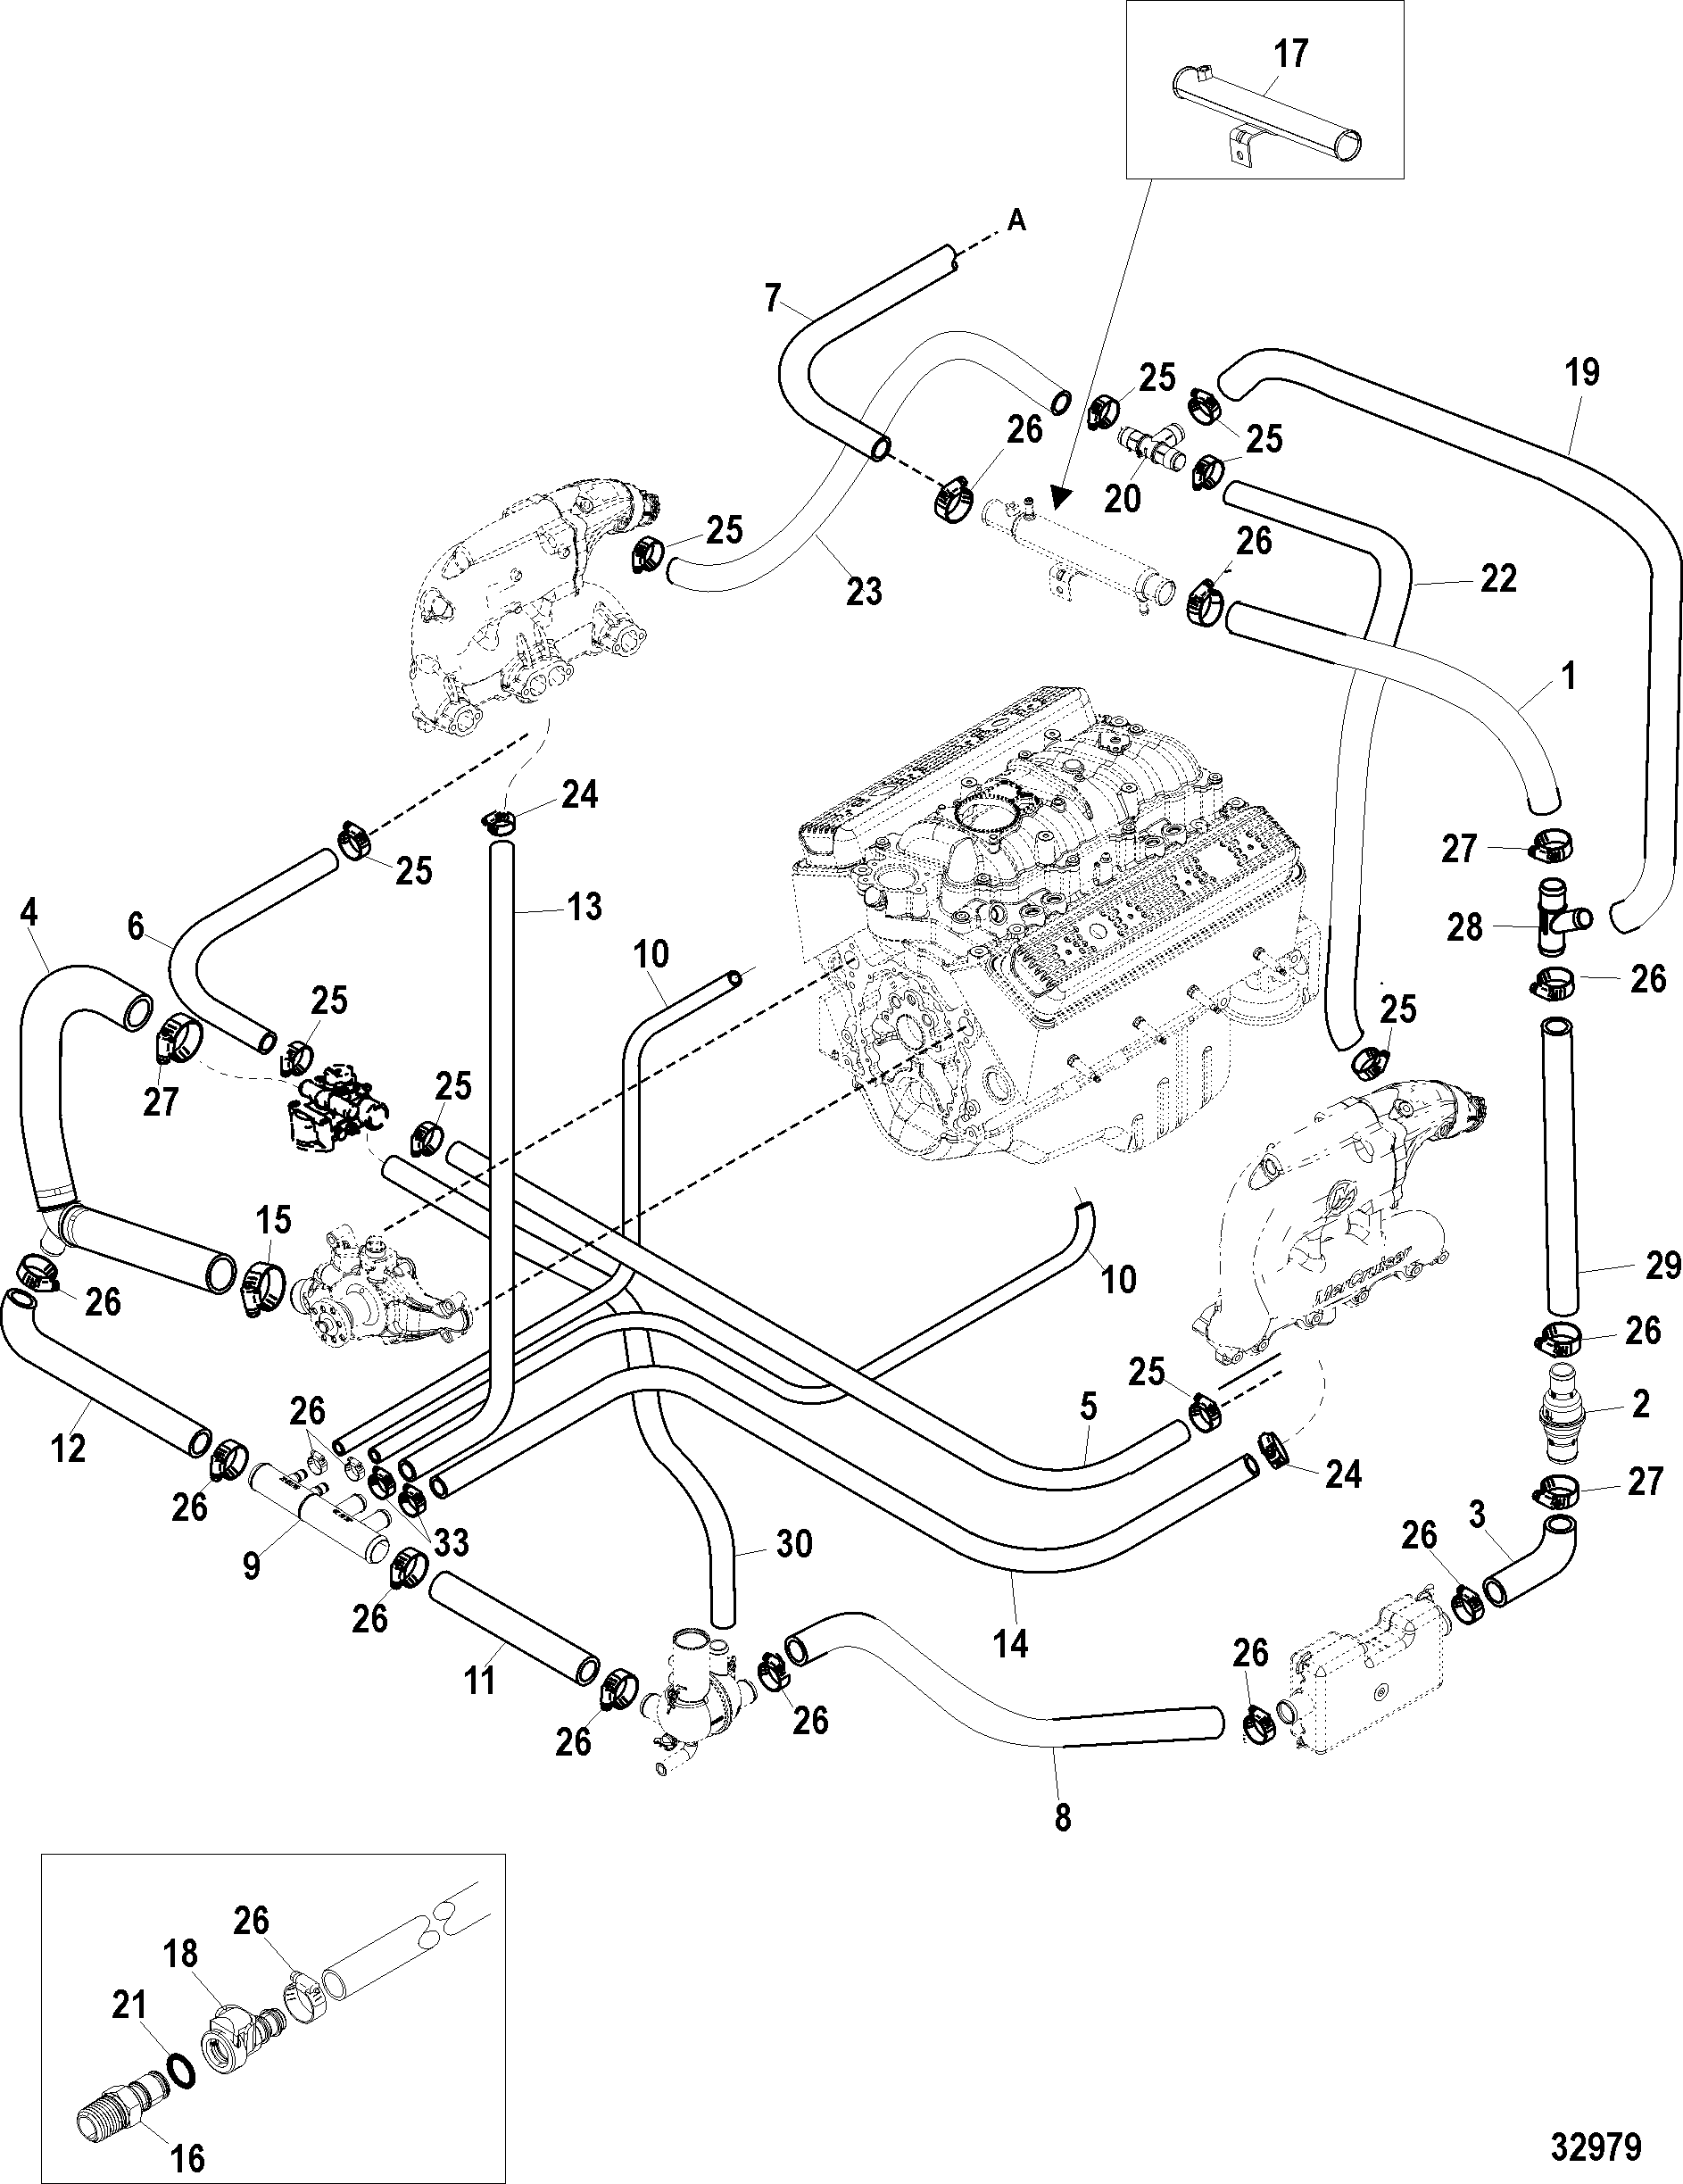 Mercruiser 350 Mag Mpi Horizon Alpha Engine Diagram Standard Cooling System Single And 7 Point Drain